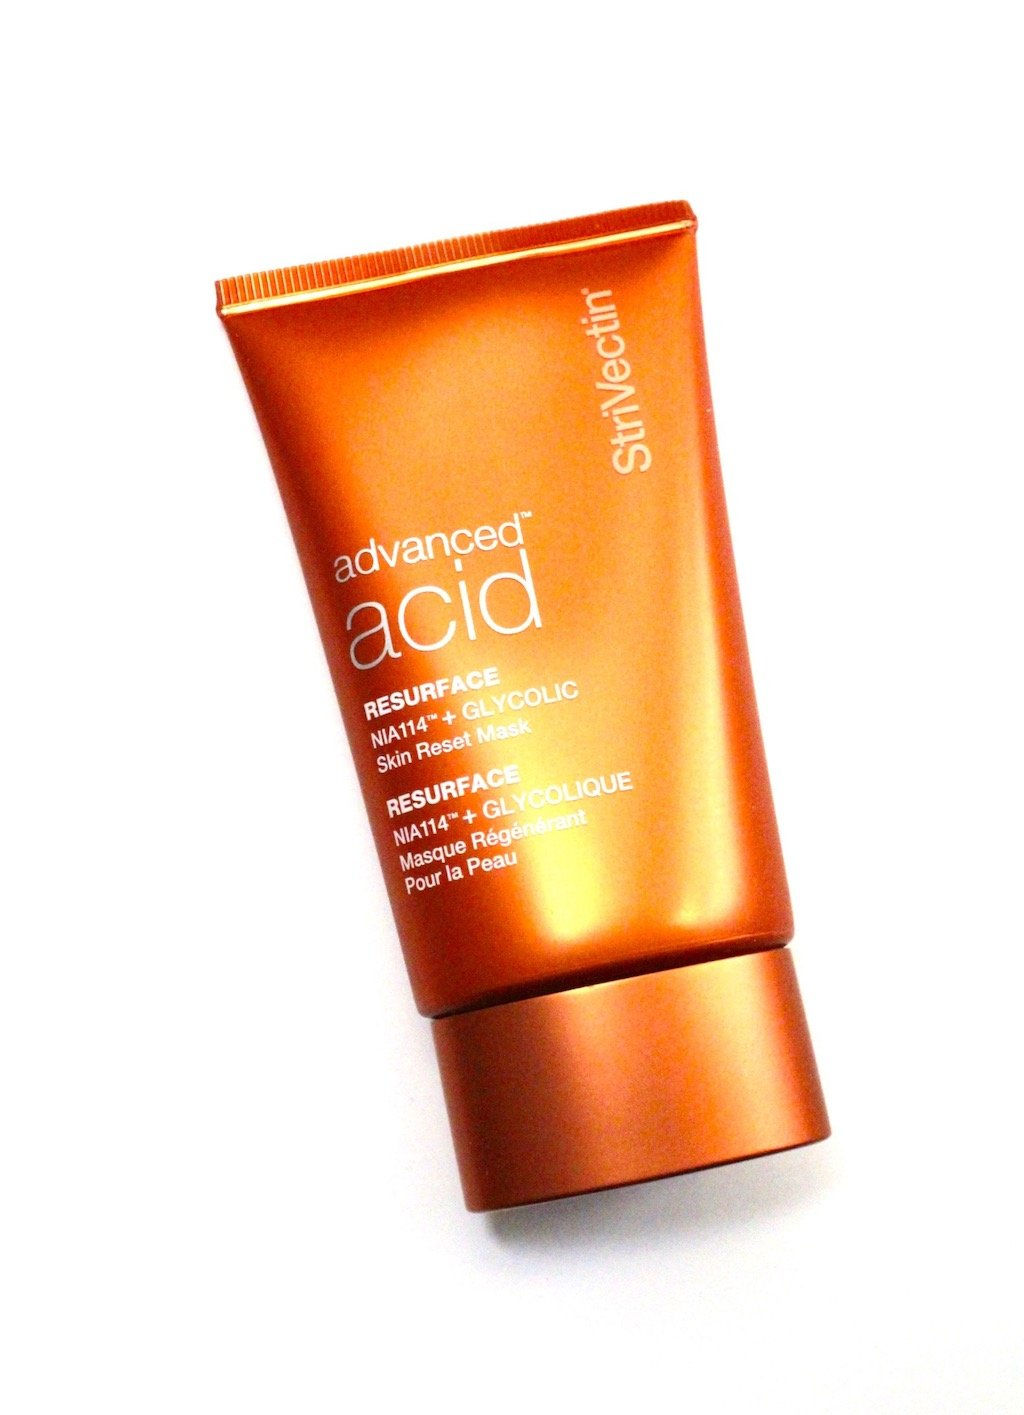 StriVectin Advanced Acids Resurface Glycolic Skin Reset Mask